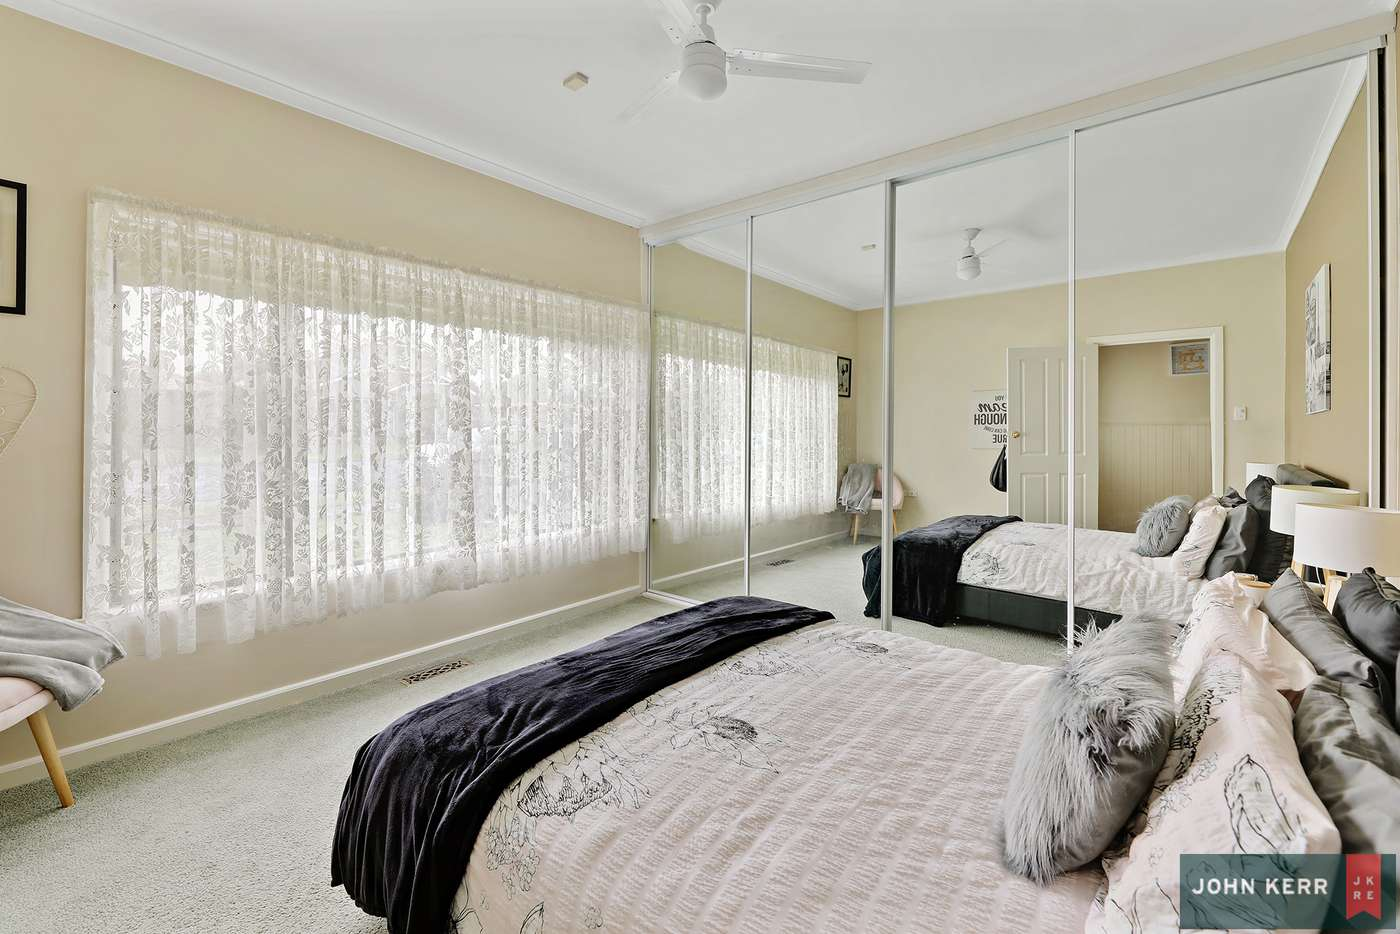 Fifth view of Homely house listing, 20 Kitchener Street, Trafalgar VIC 3824